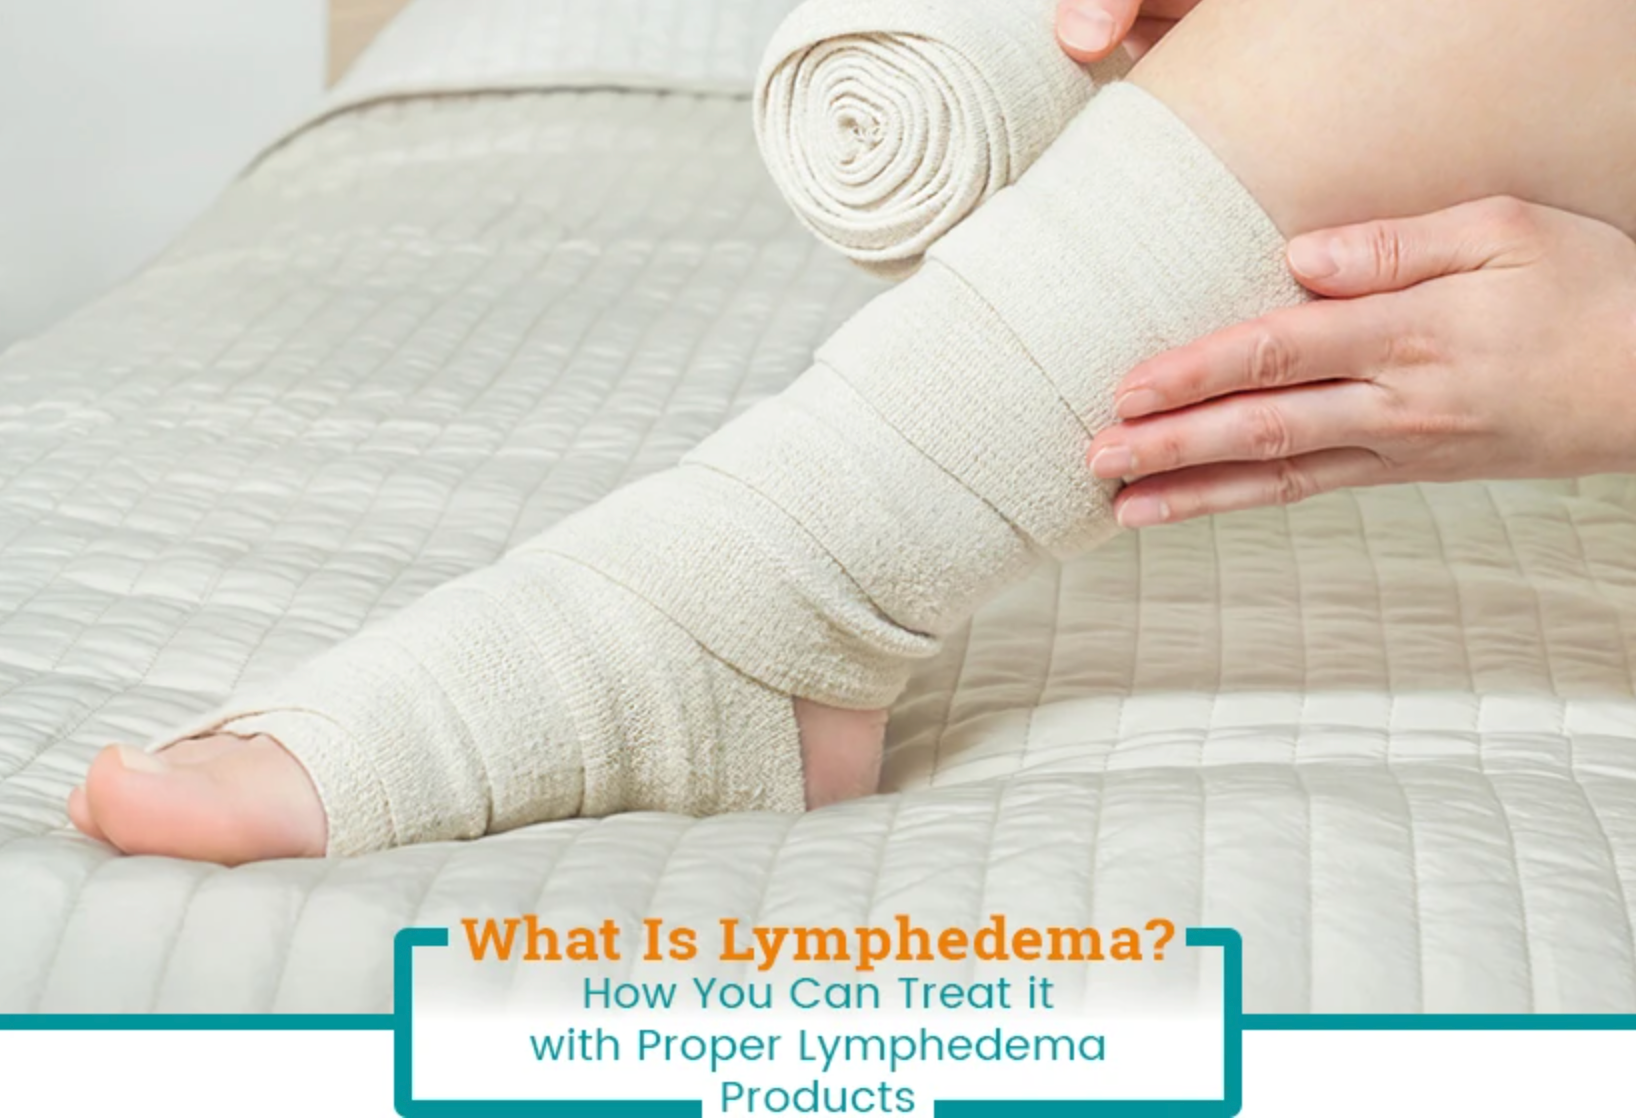 What Is Lymphedema? How You Can Treat it with Proper Lymphedema Products